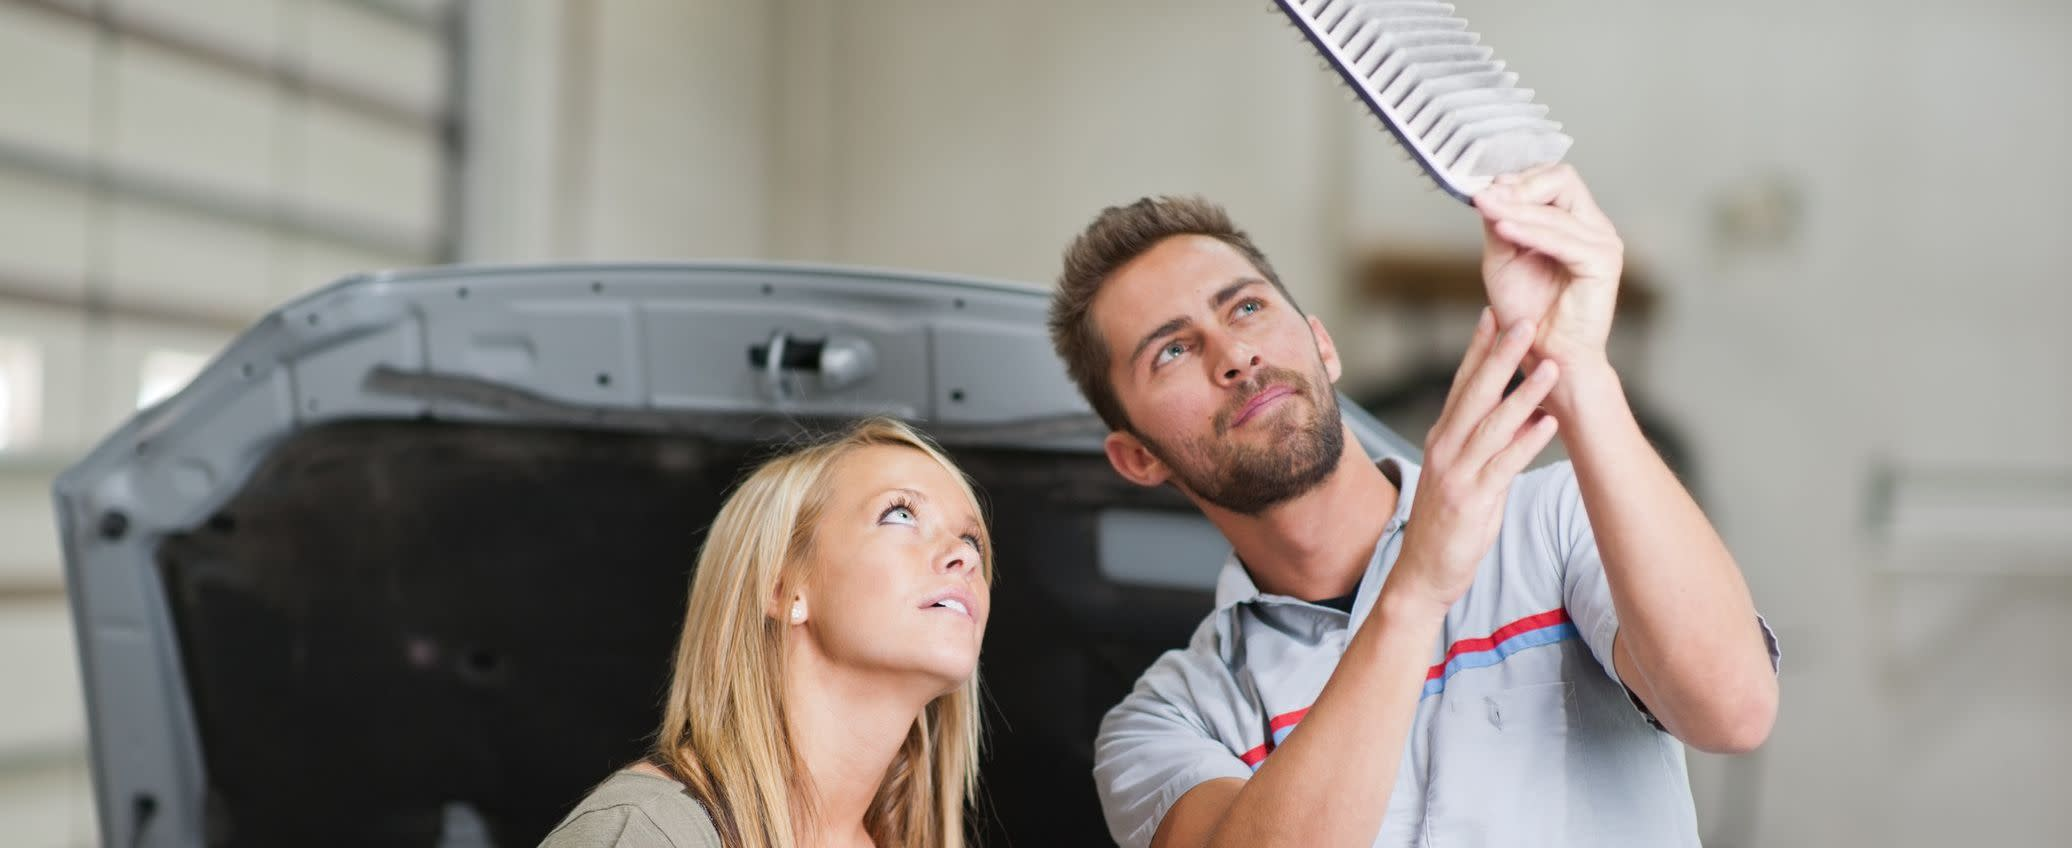 Air Filter Replacement Service near Des Moines, IA